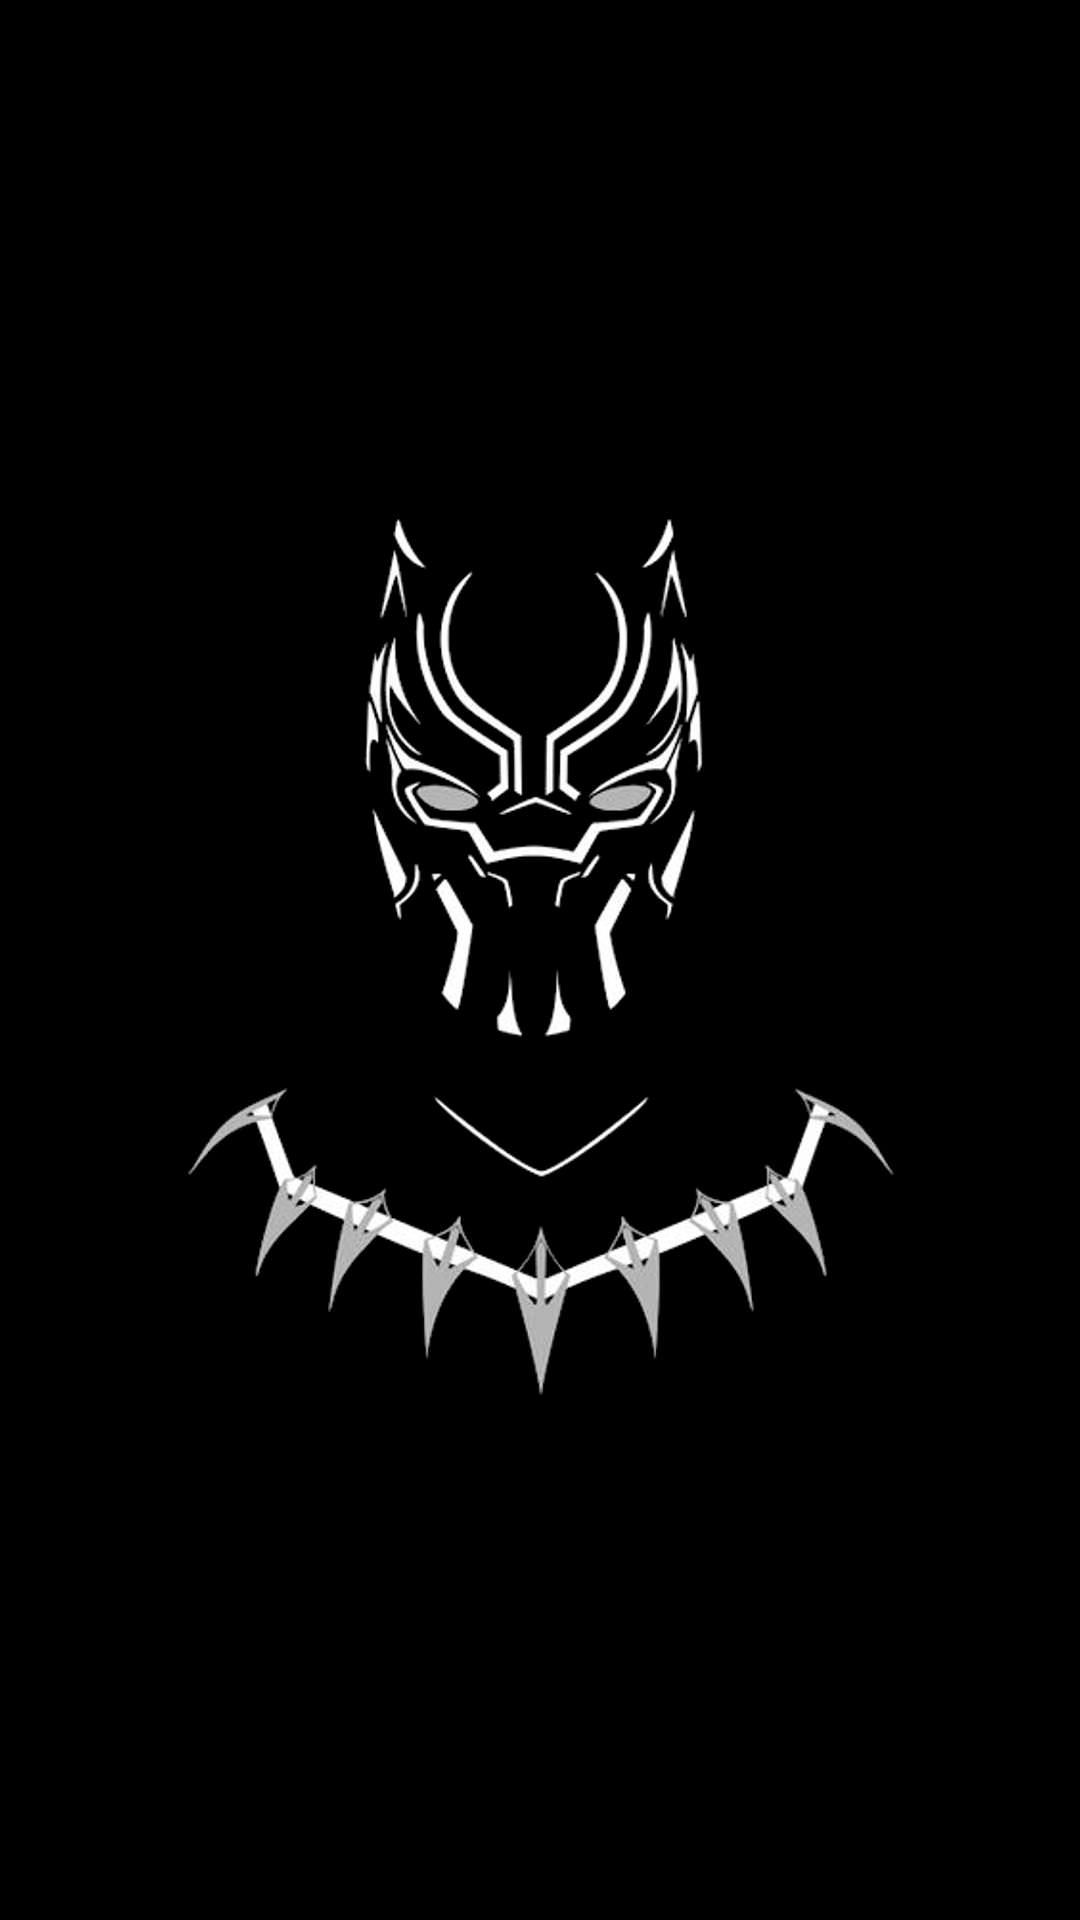 True Black Panther 1080x1920 I Imgur Com Submitted By Siriacus To R Amoledbackgrounds 0 Black Panther Marvel Black Panther Hd Wallpaper Black Panther Art